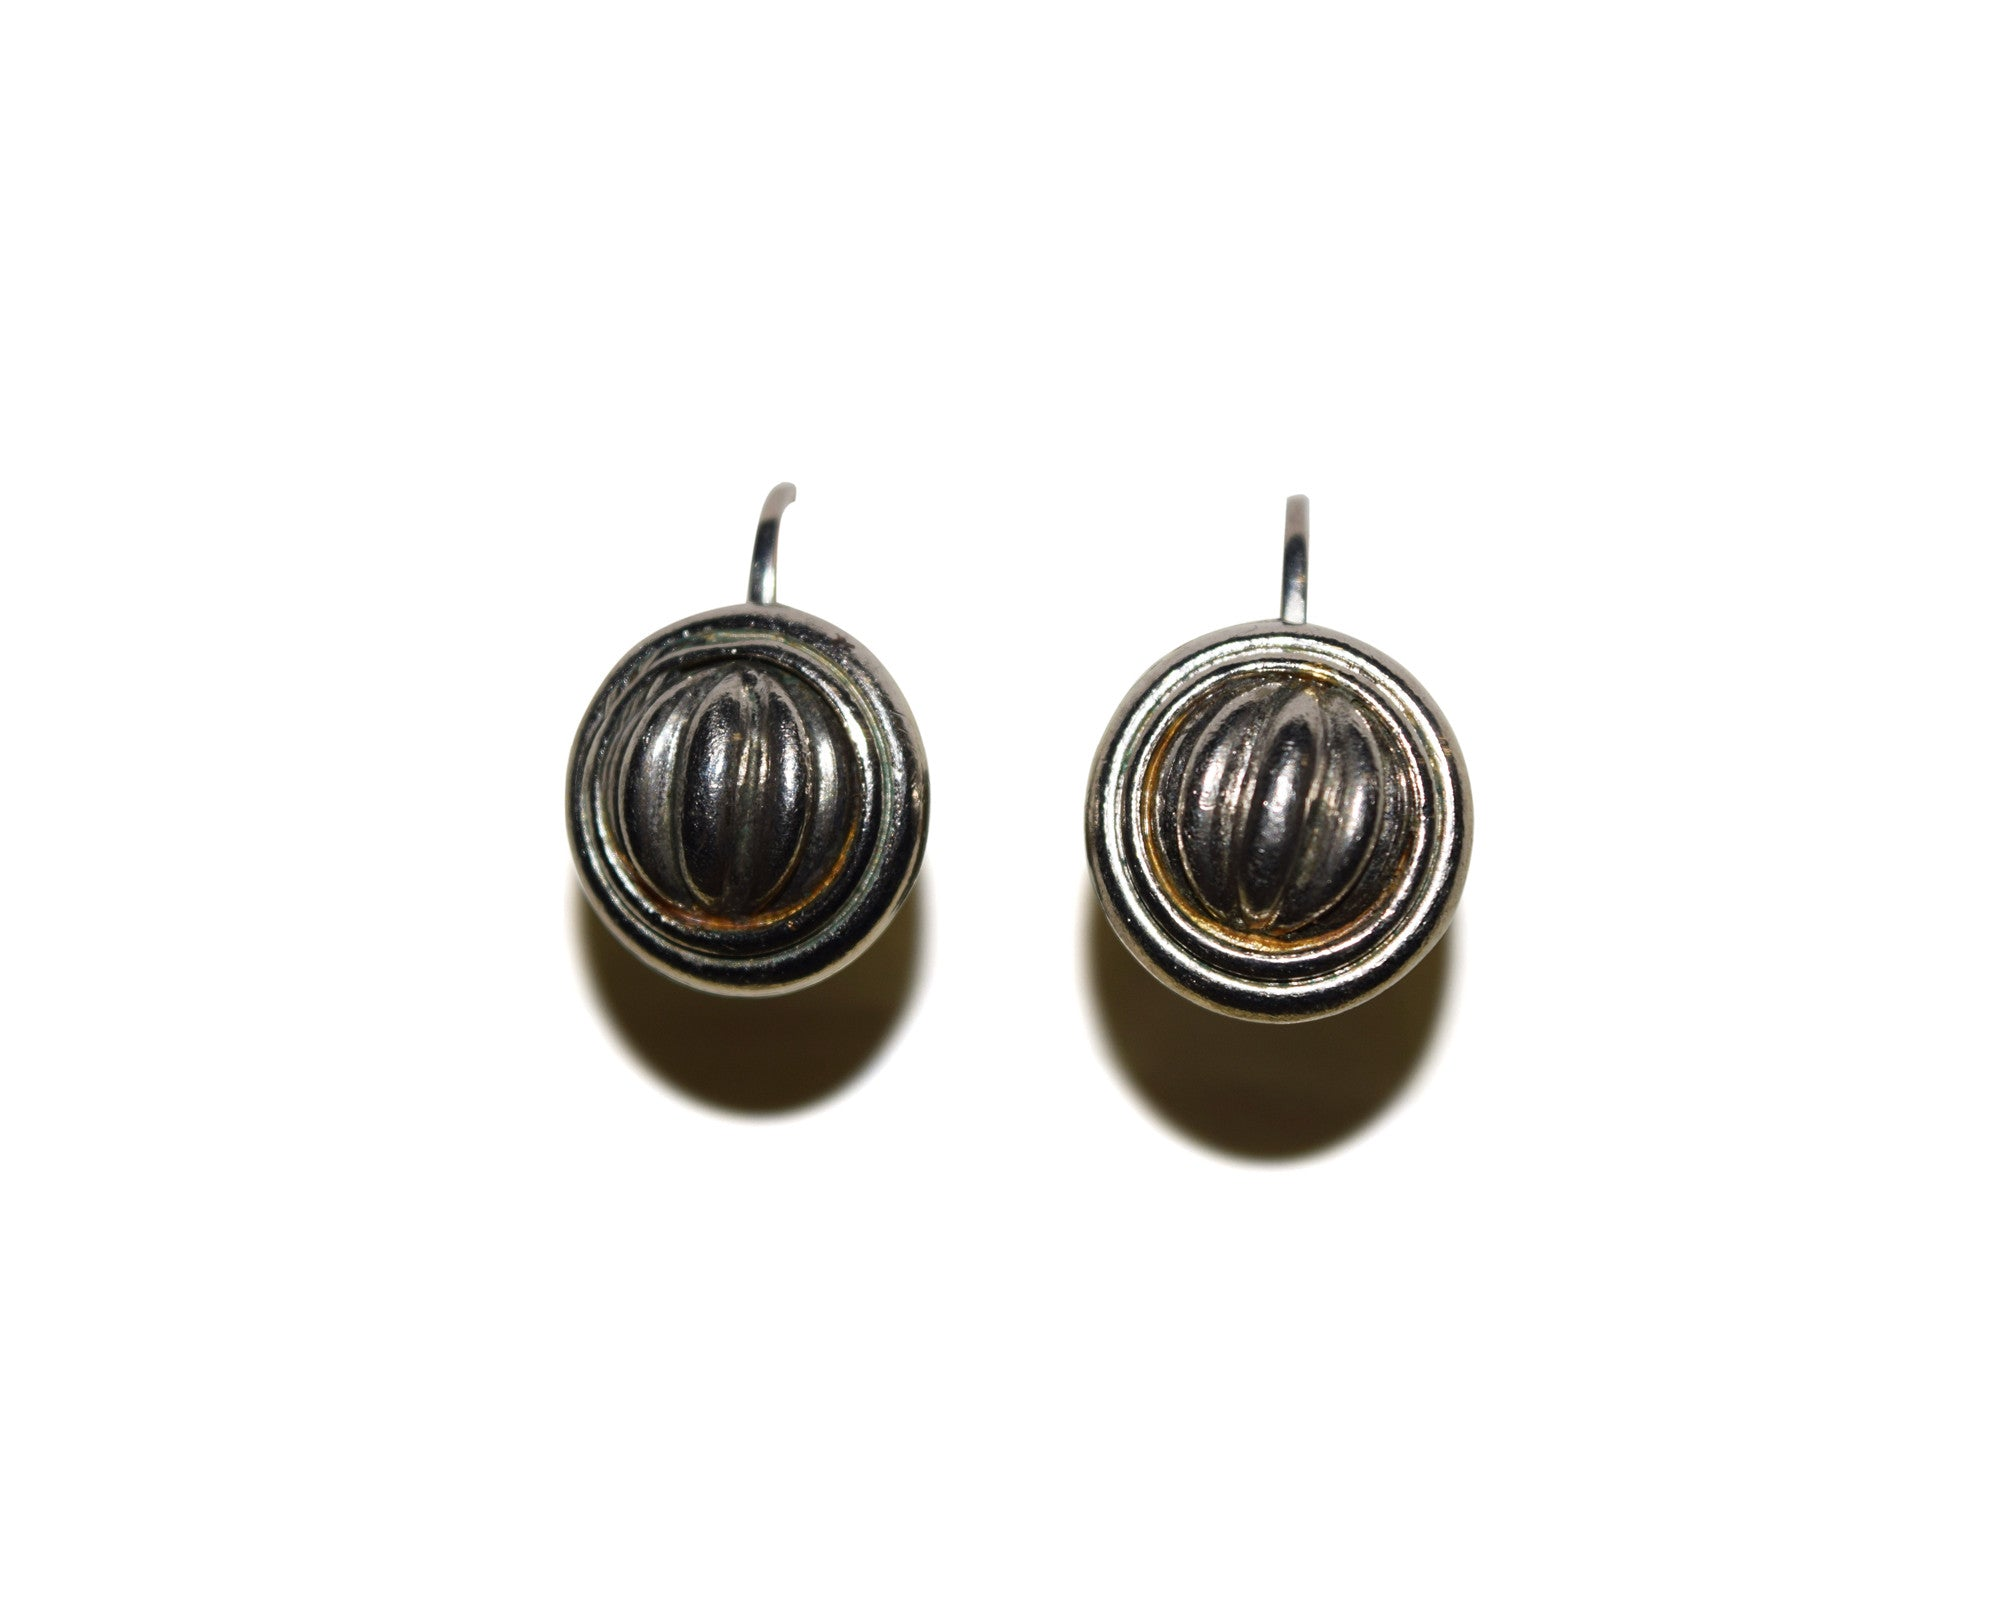 Vintage Silver Dome Earrings